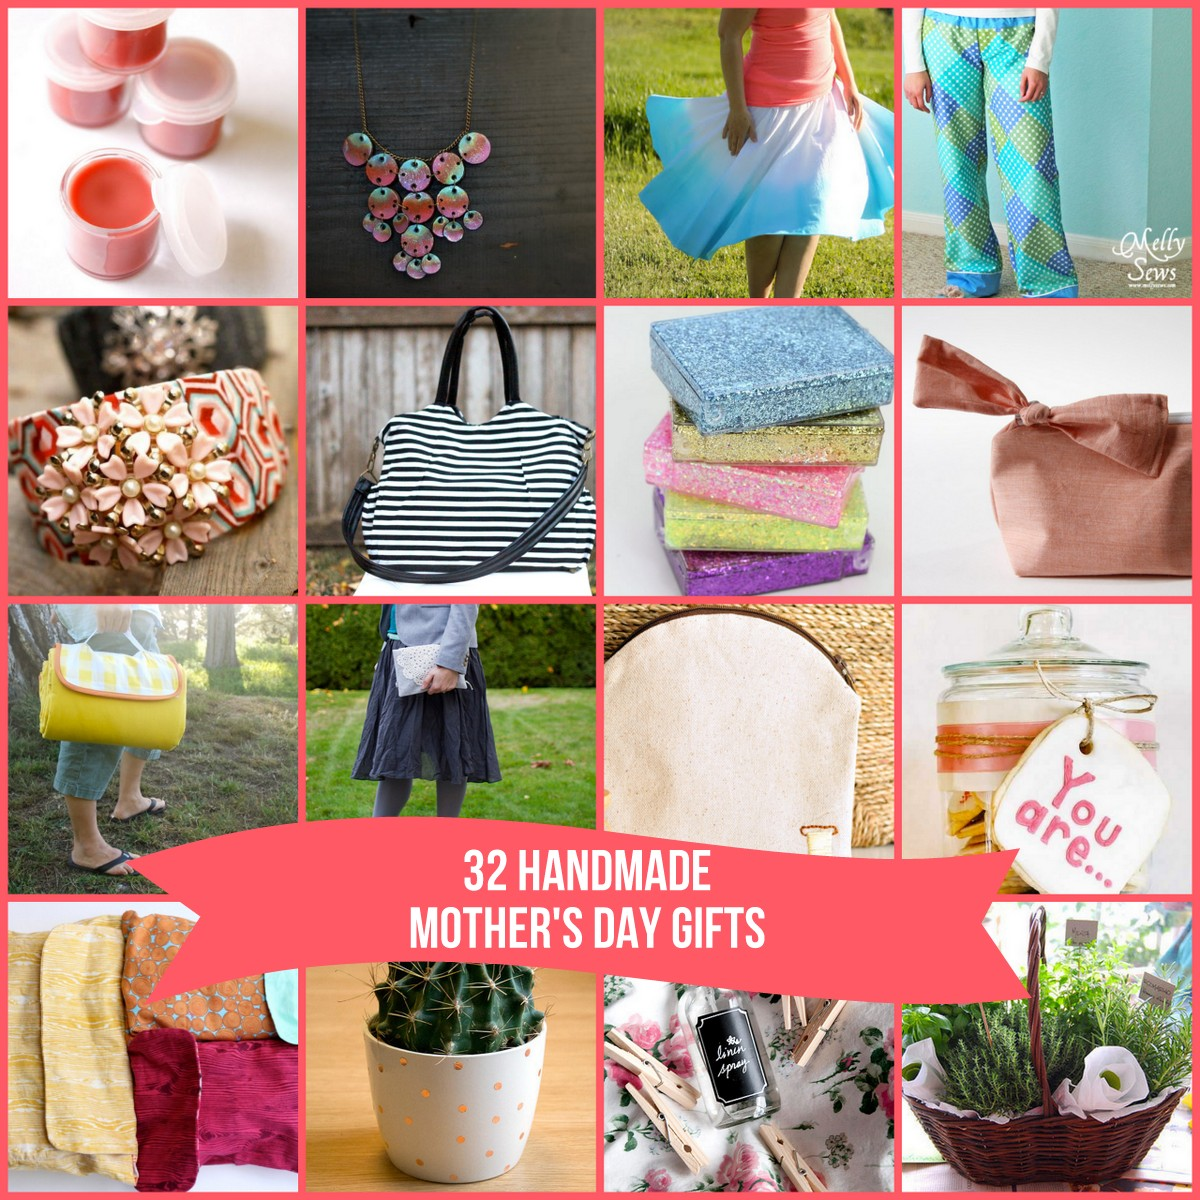 32 diy mother s day gift ideas Mothers day presents diy